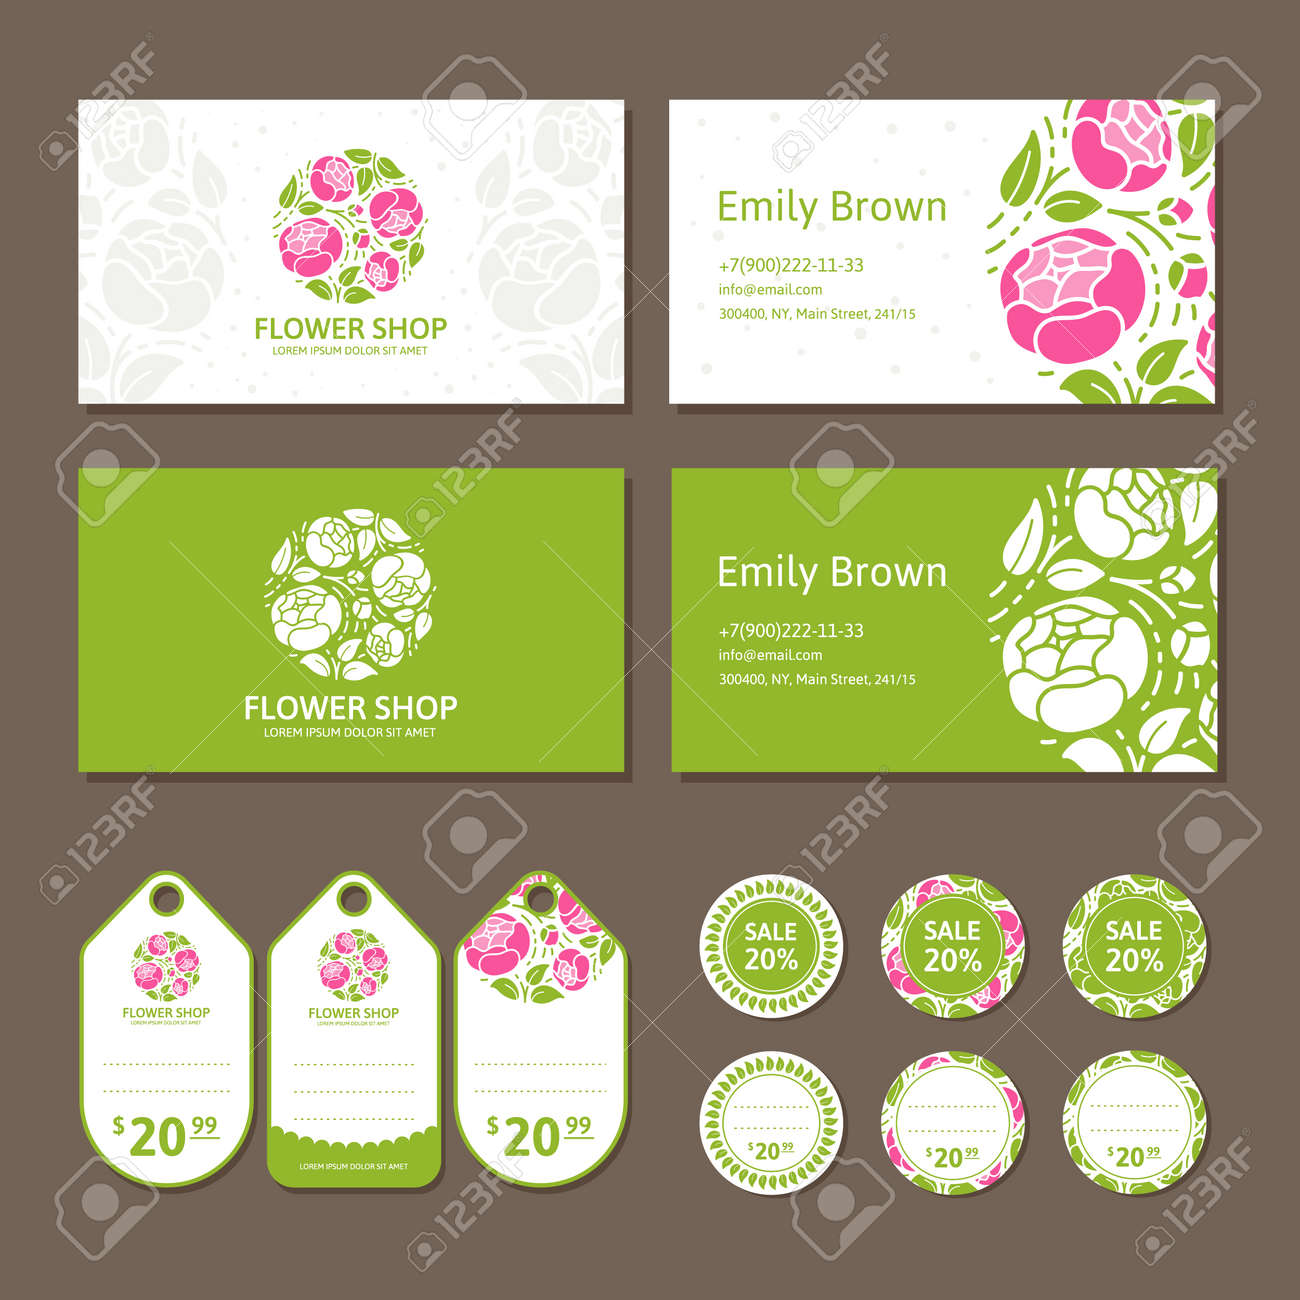 Corporate Identity For A Flower Shop. Logo, Business Card And ...